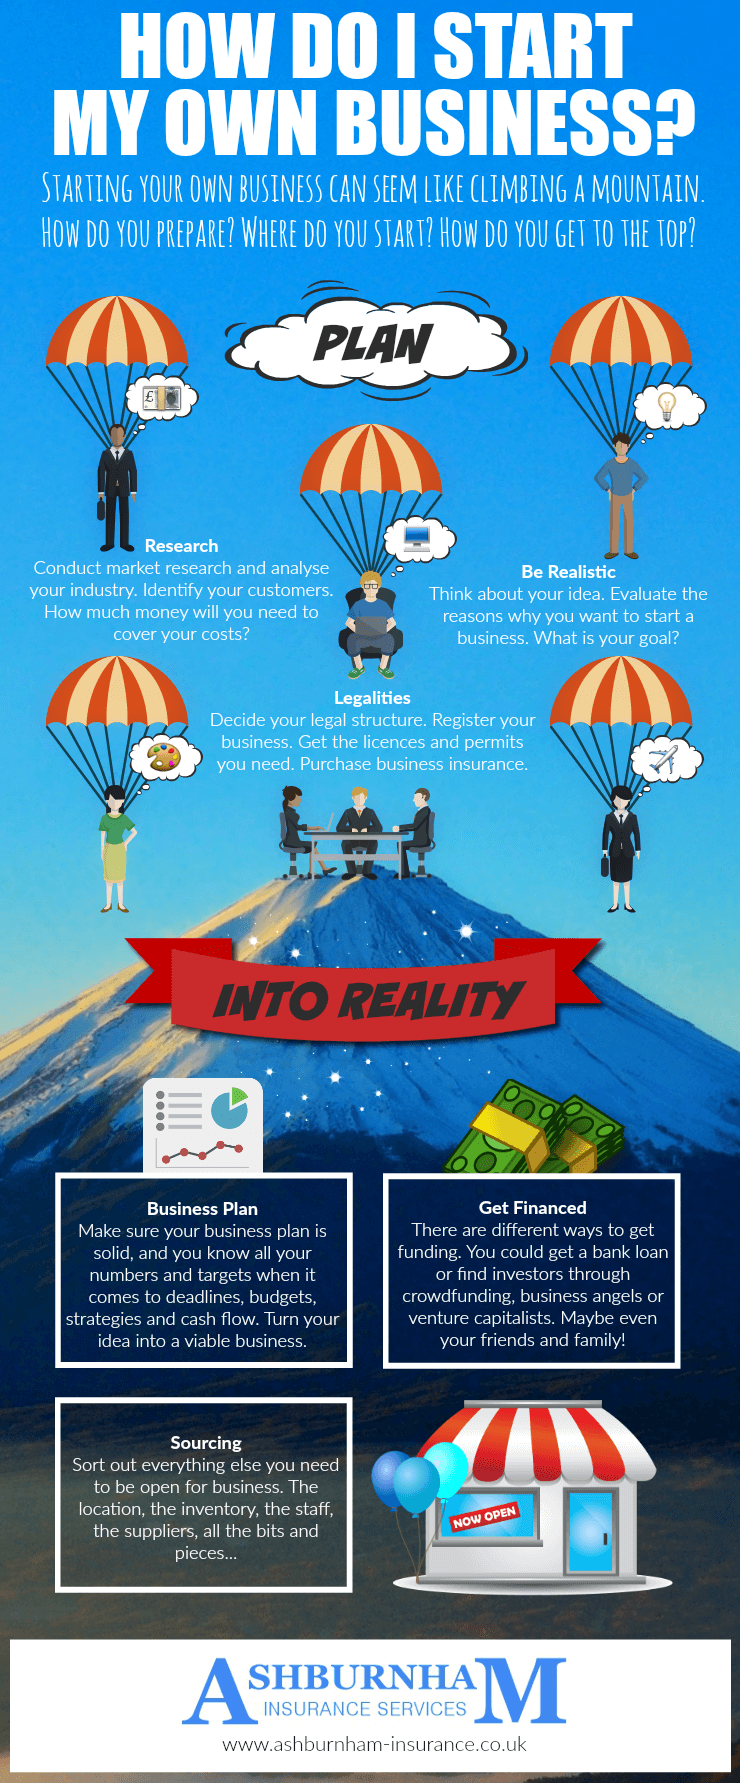 How Do I Start My Own Business Infographic